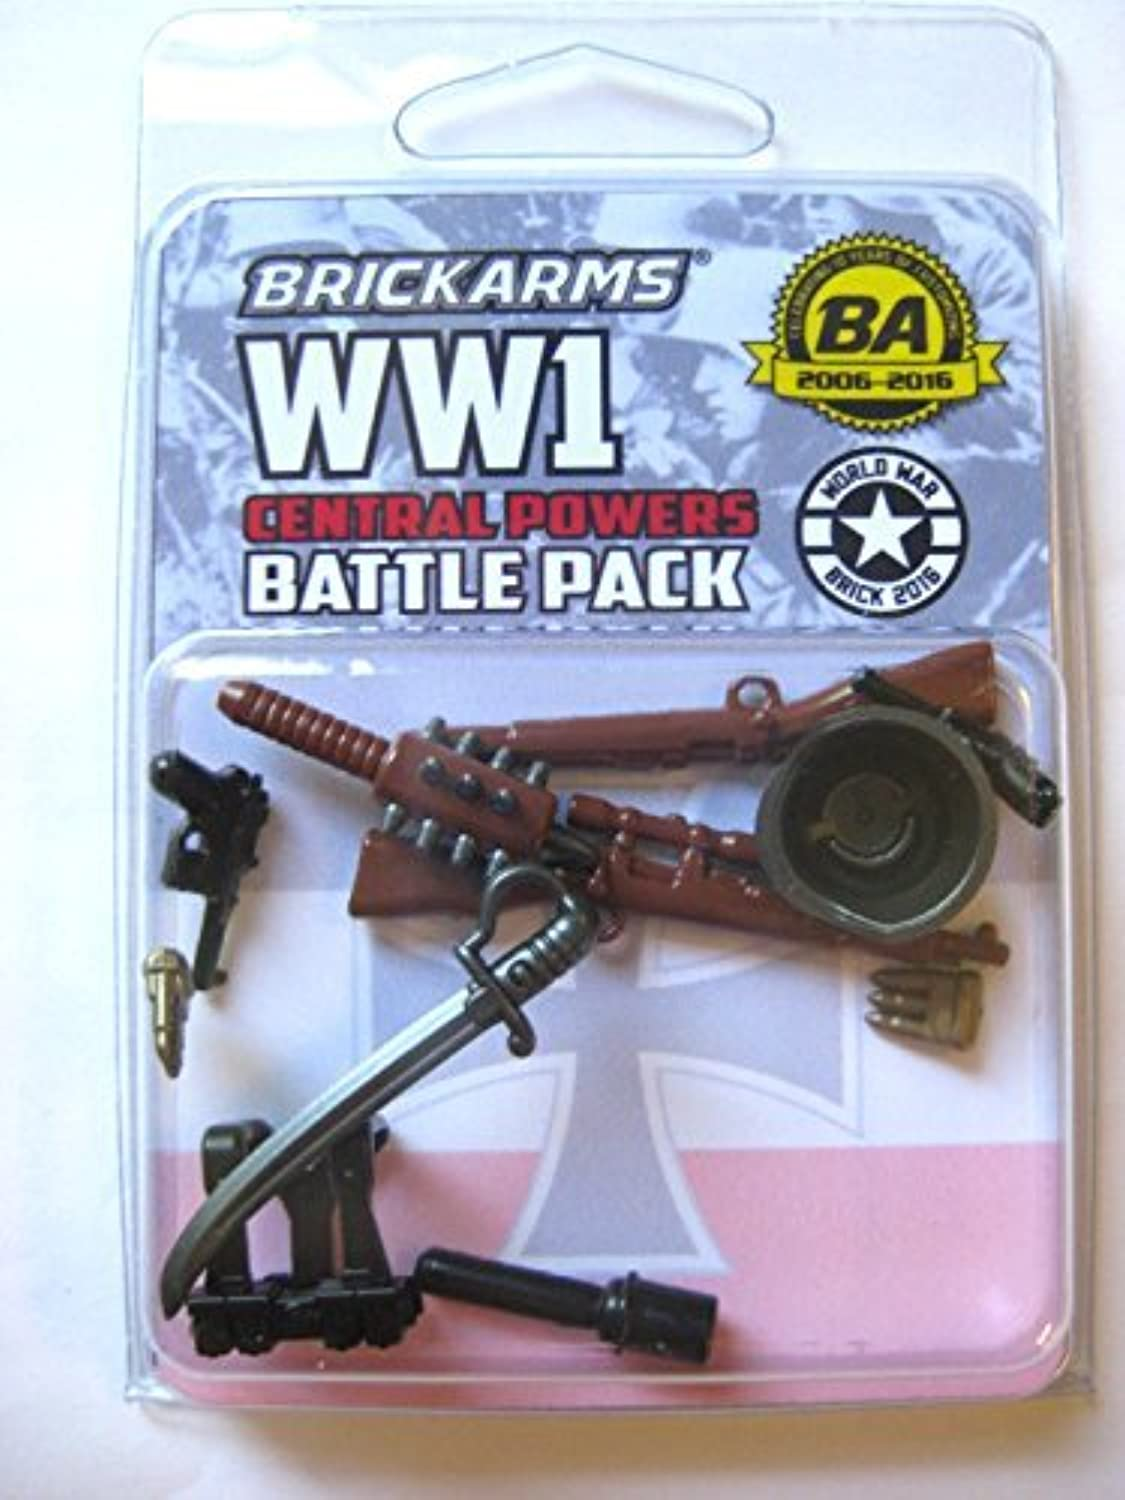 Brickarms WWI Central Powers Battle Pack by BrickArms